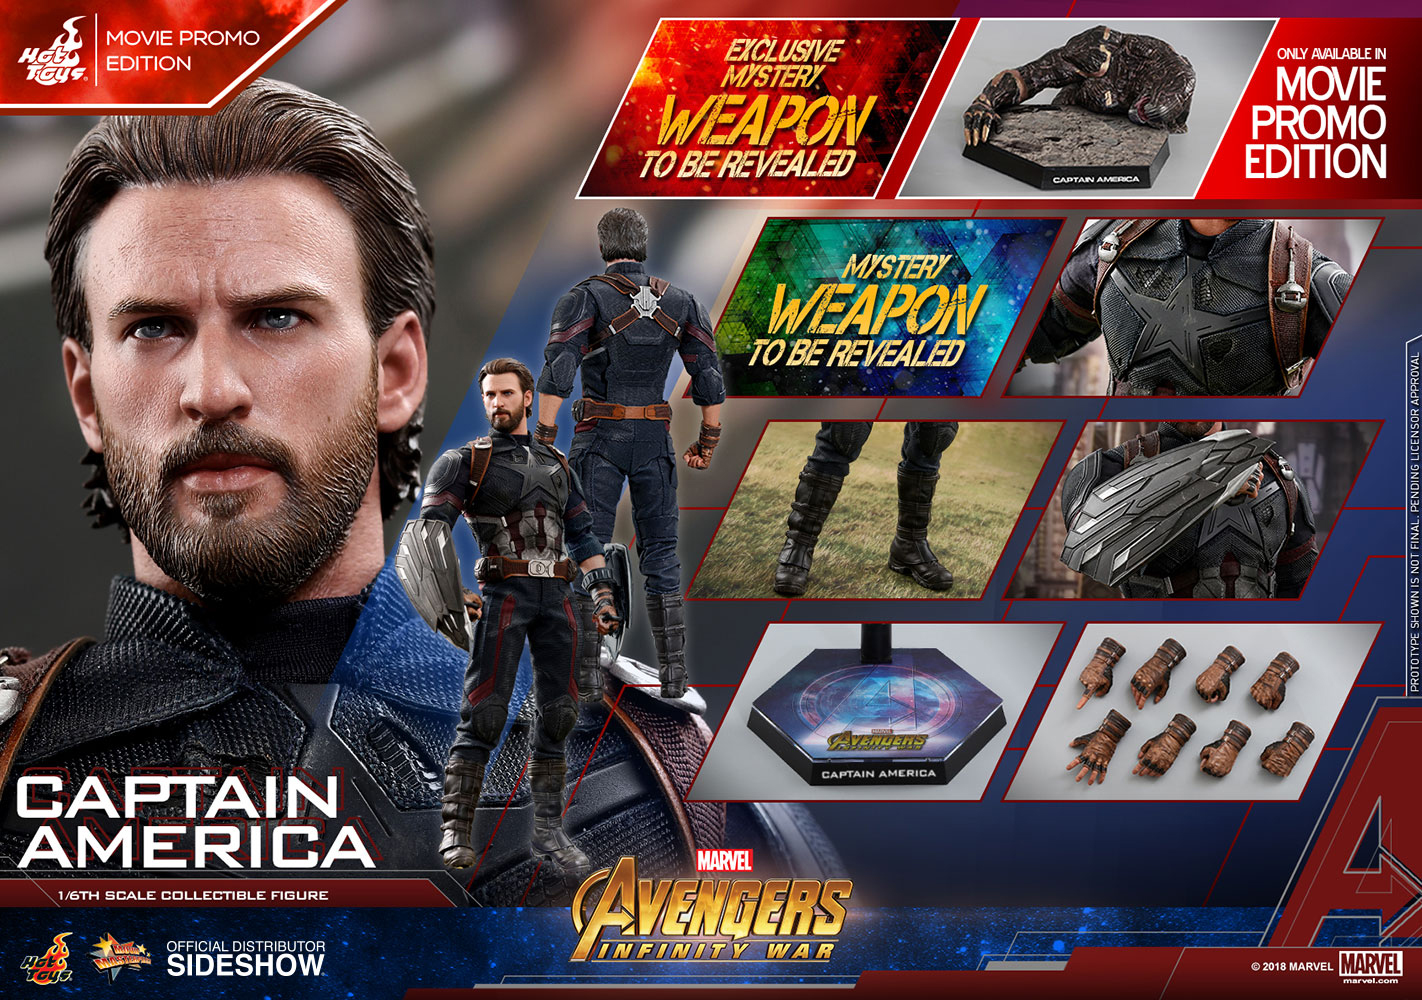 hot-toys-avengers-infinity-war-captain-america-figure-movie-promo-edition